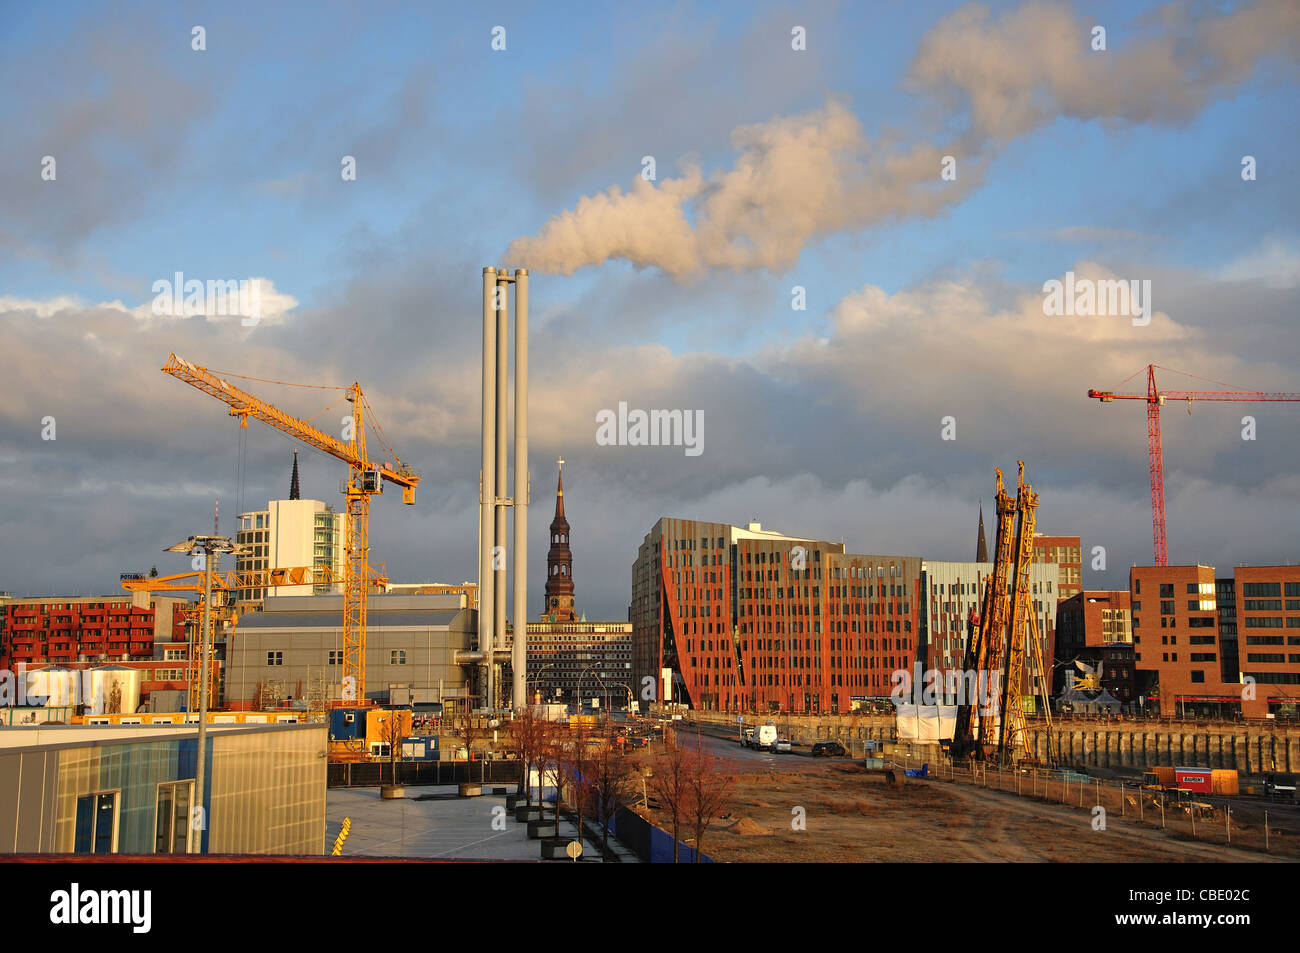 City view from harbour, Hamburg, Hamburg Metropolitan Region, Federal Republic of Germany - Stock Image